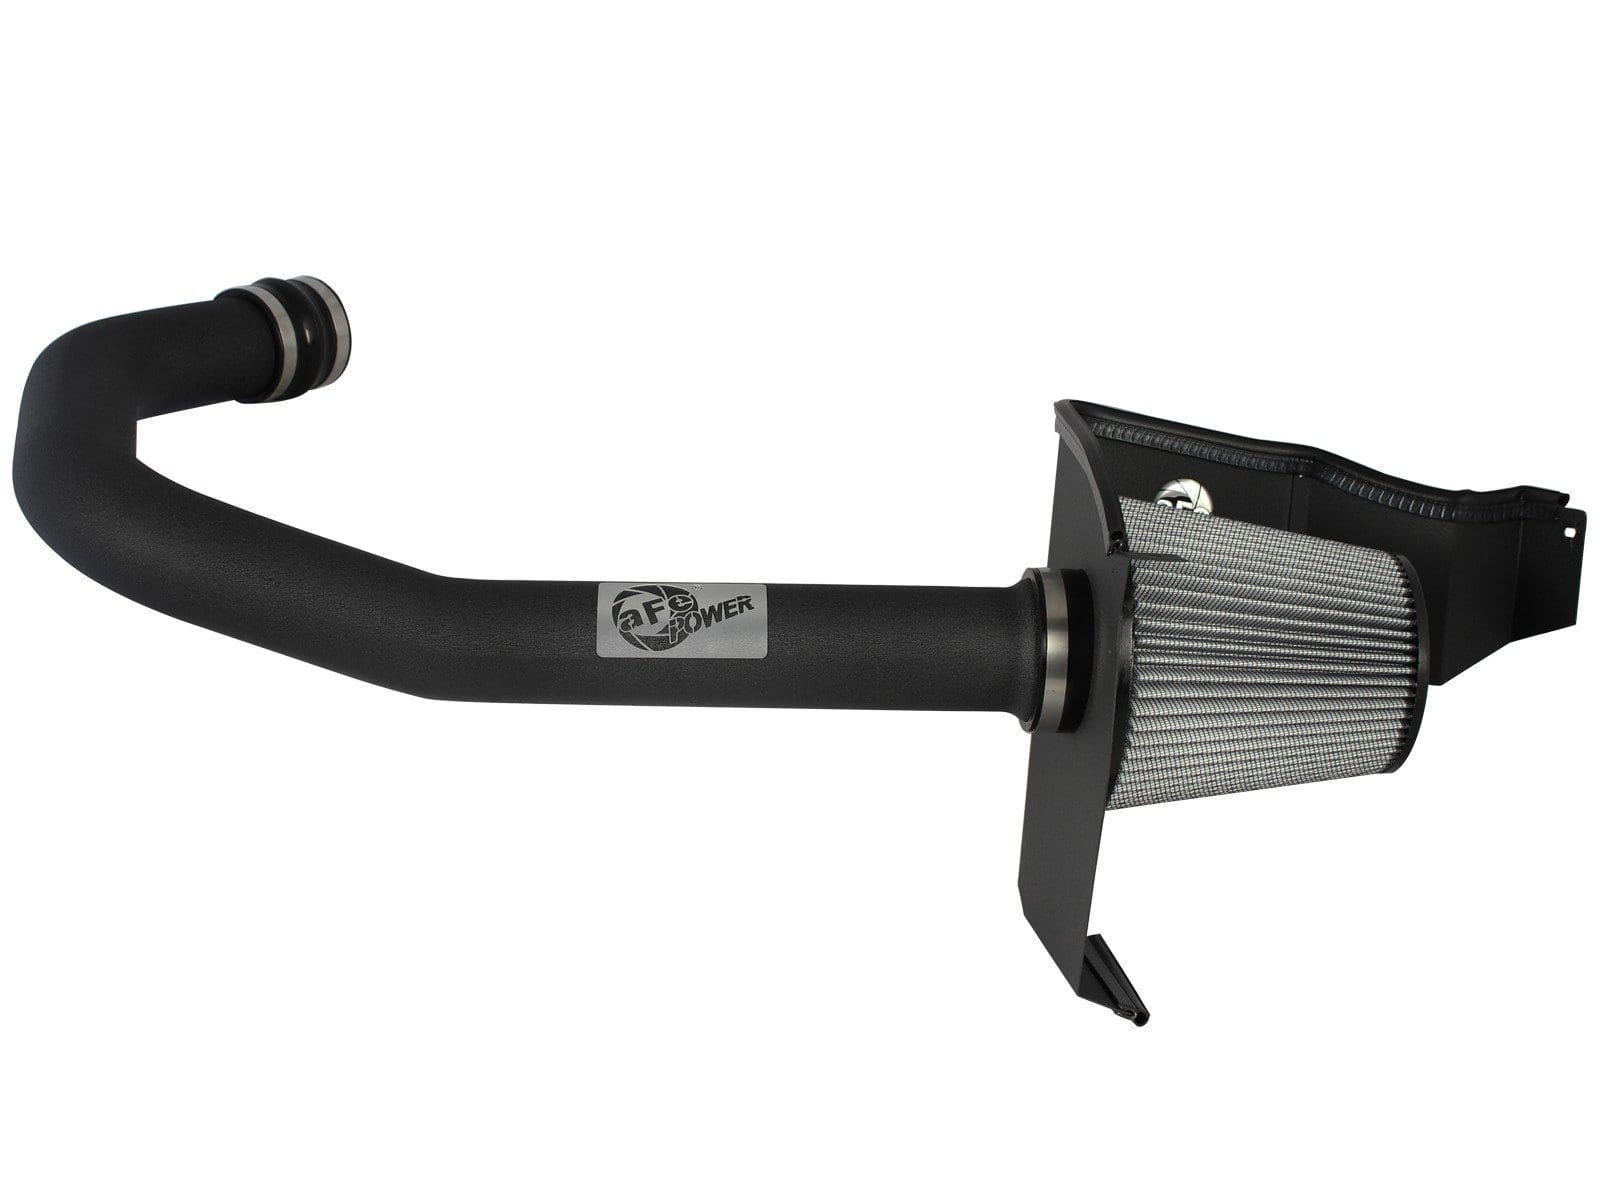 aFe POWER 51-12152-B Magnum FORCE Stage-2 Pro DRY S Cold Air Intake System + Power cleaner for non – Oiled Filter